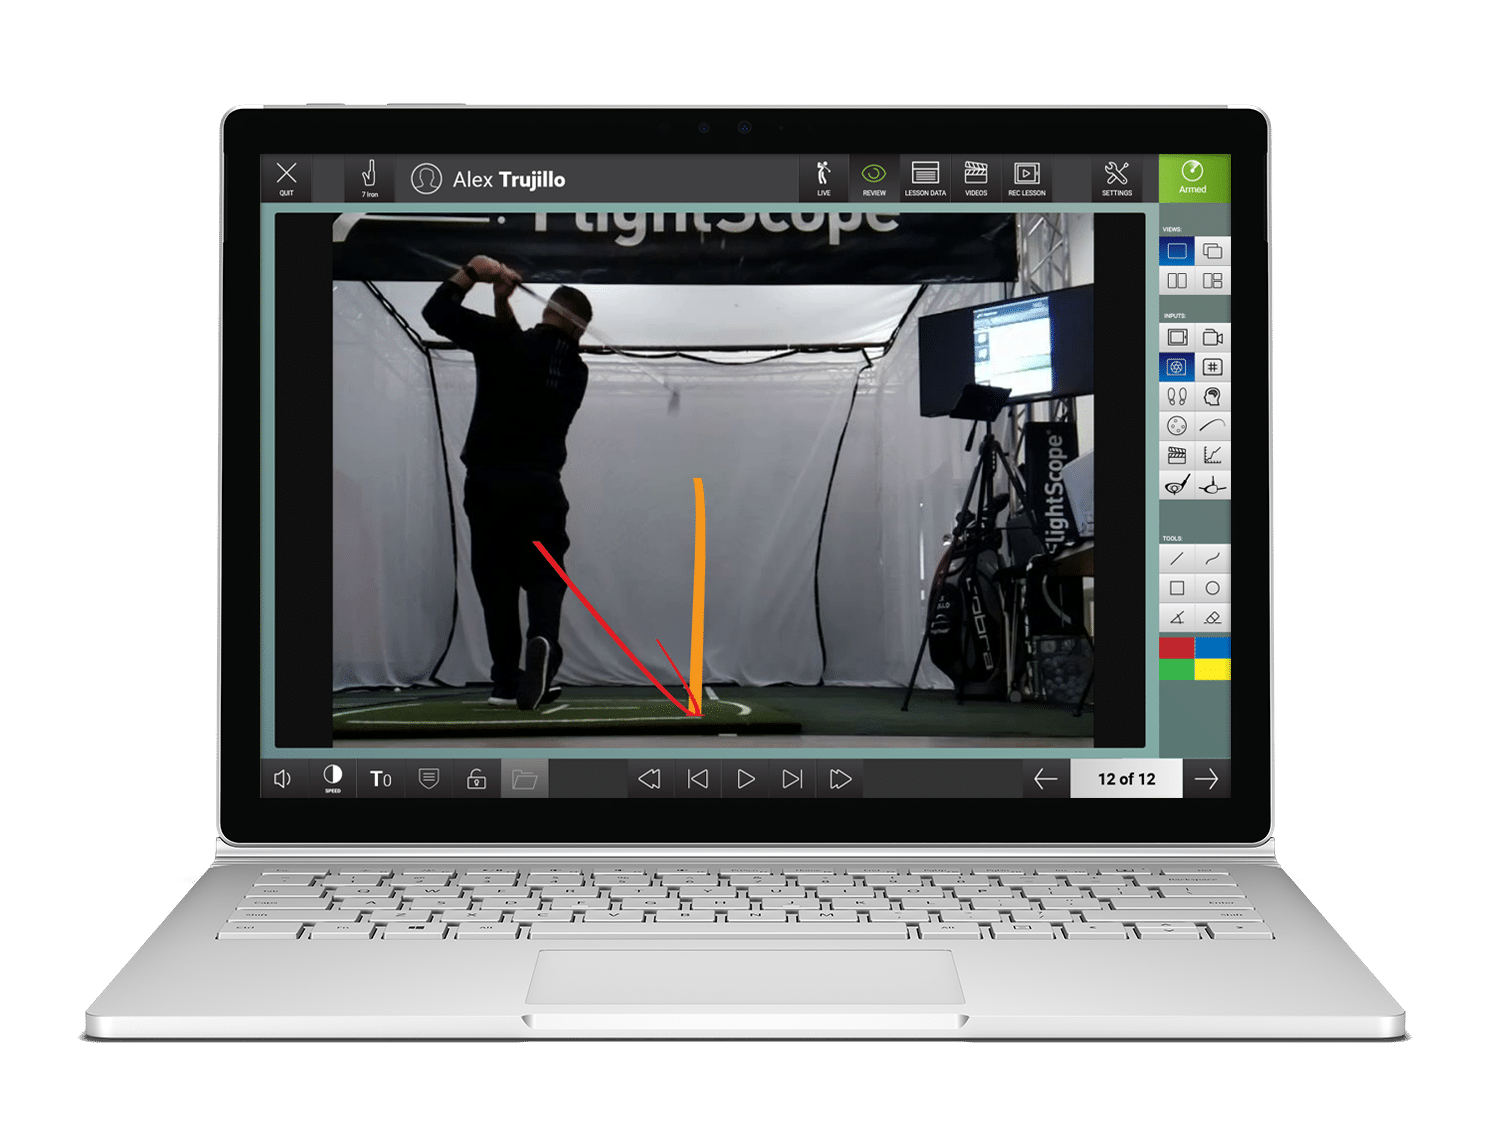 Photo showing Flightscope's video app's golf ball and club trace feature